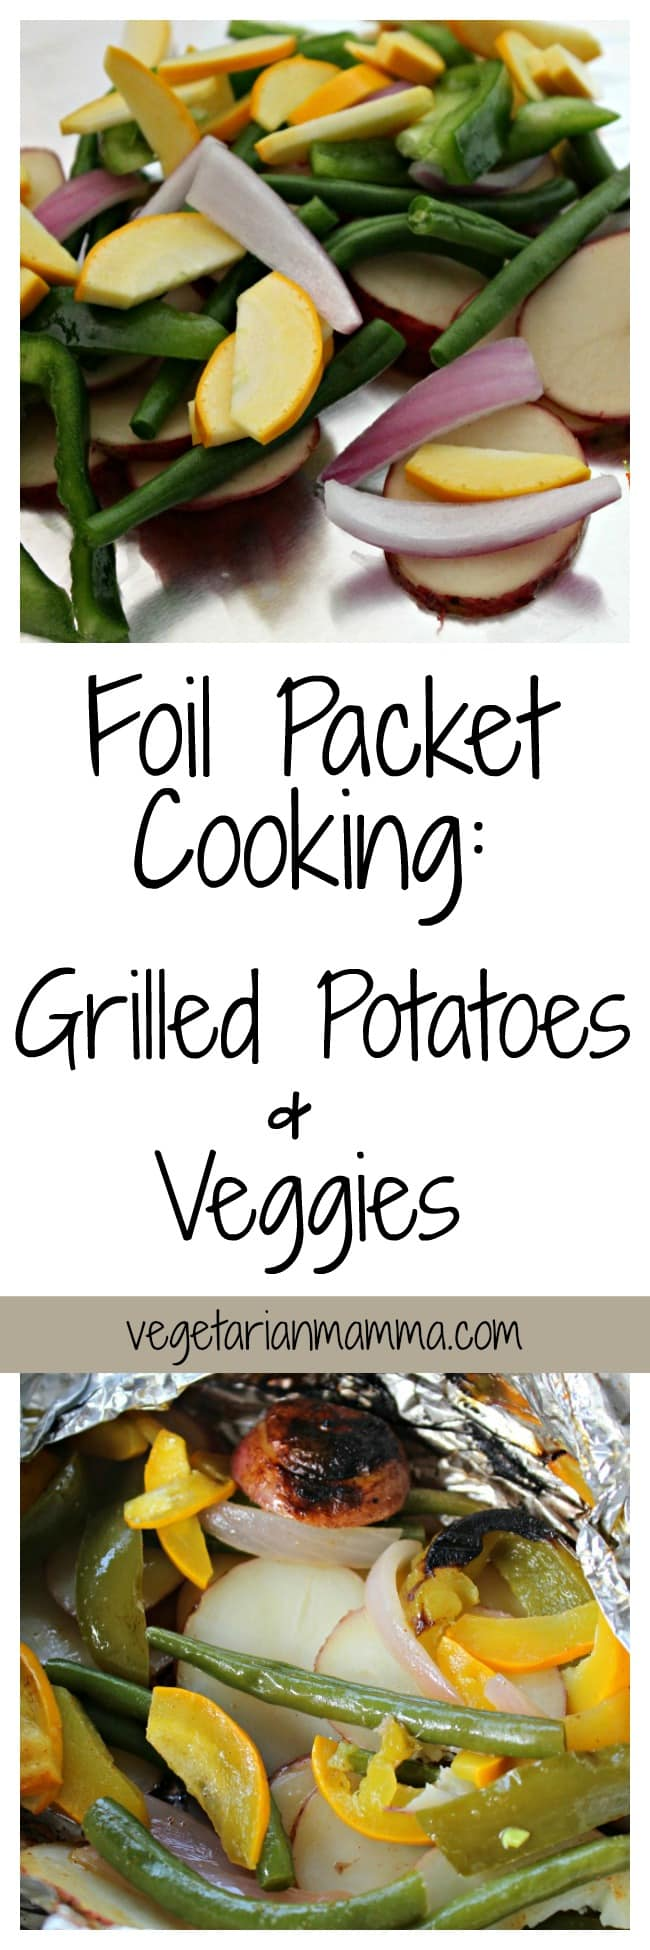 Gluten Free Foil Packet Cooking - Grilled Potatoes and Vegetables